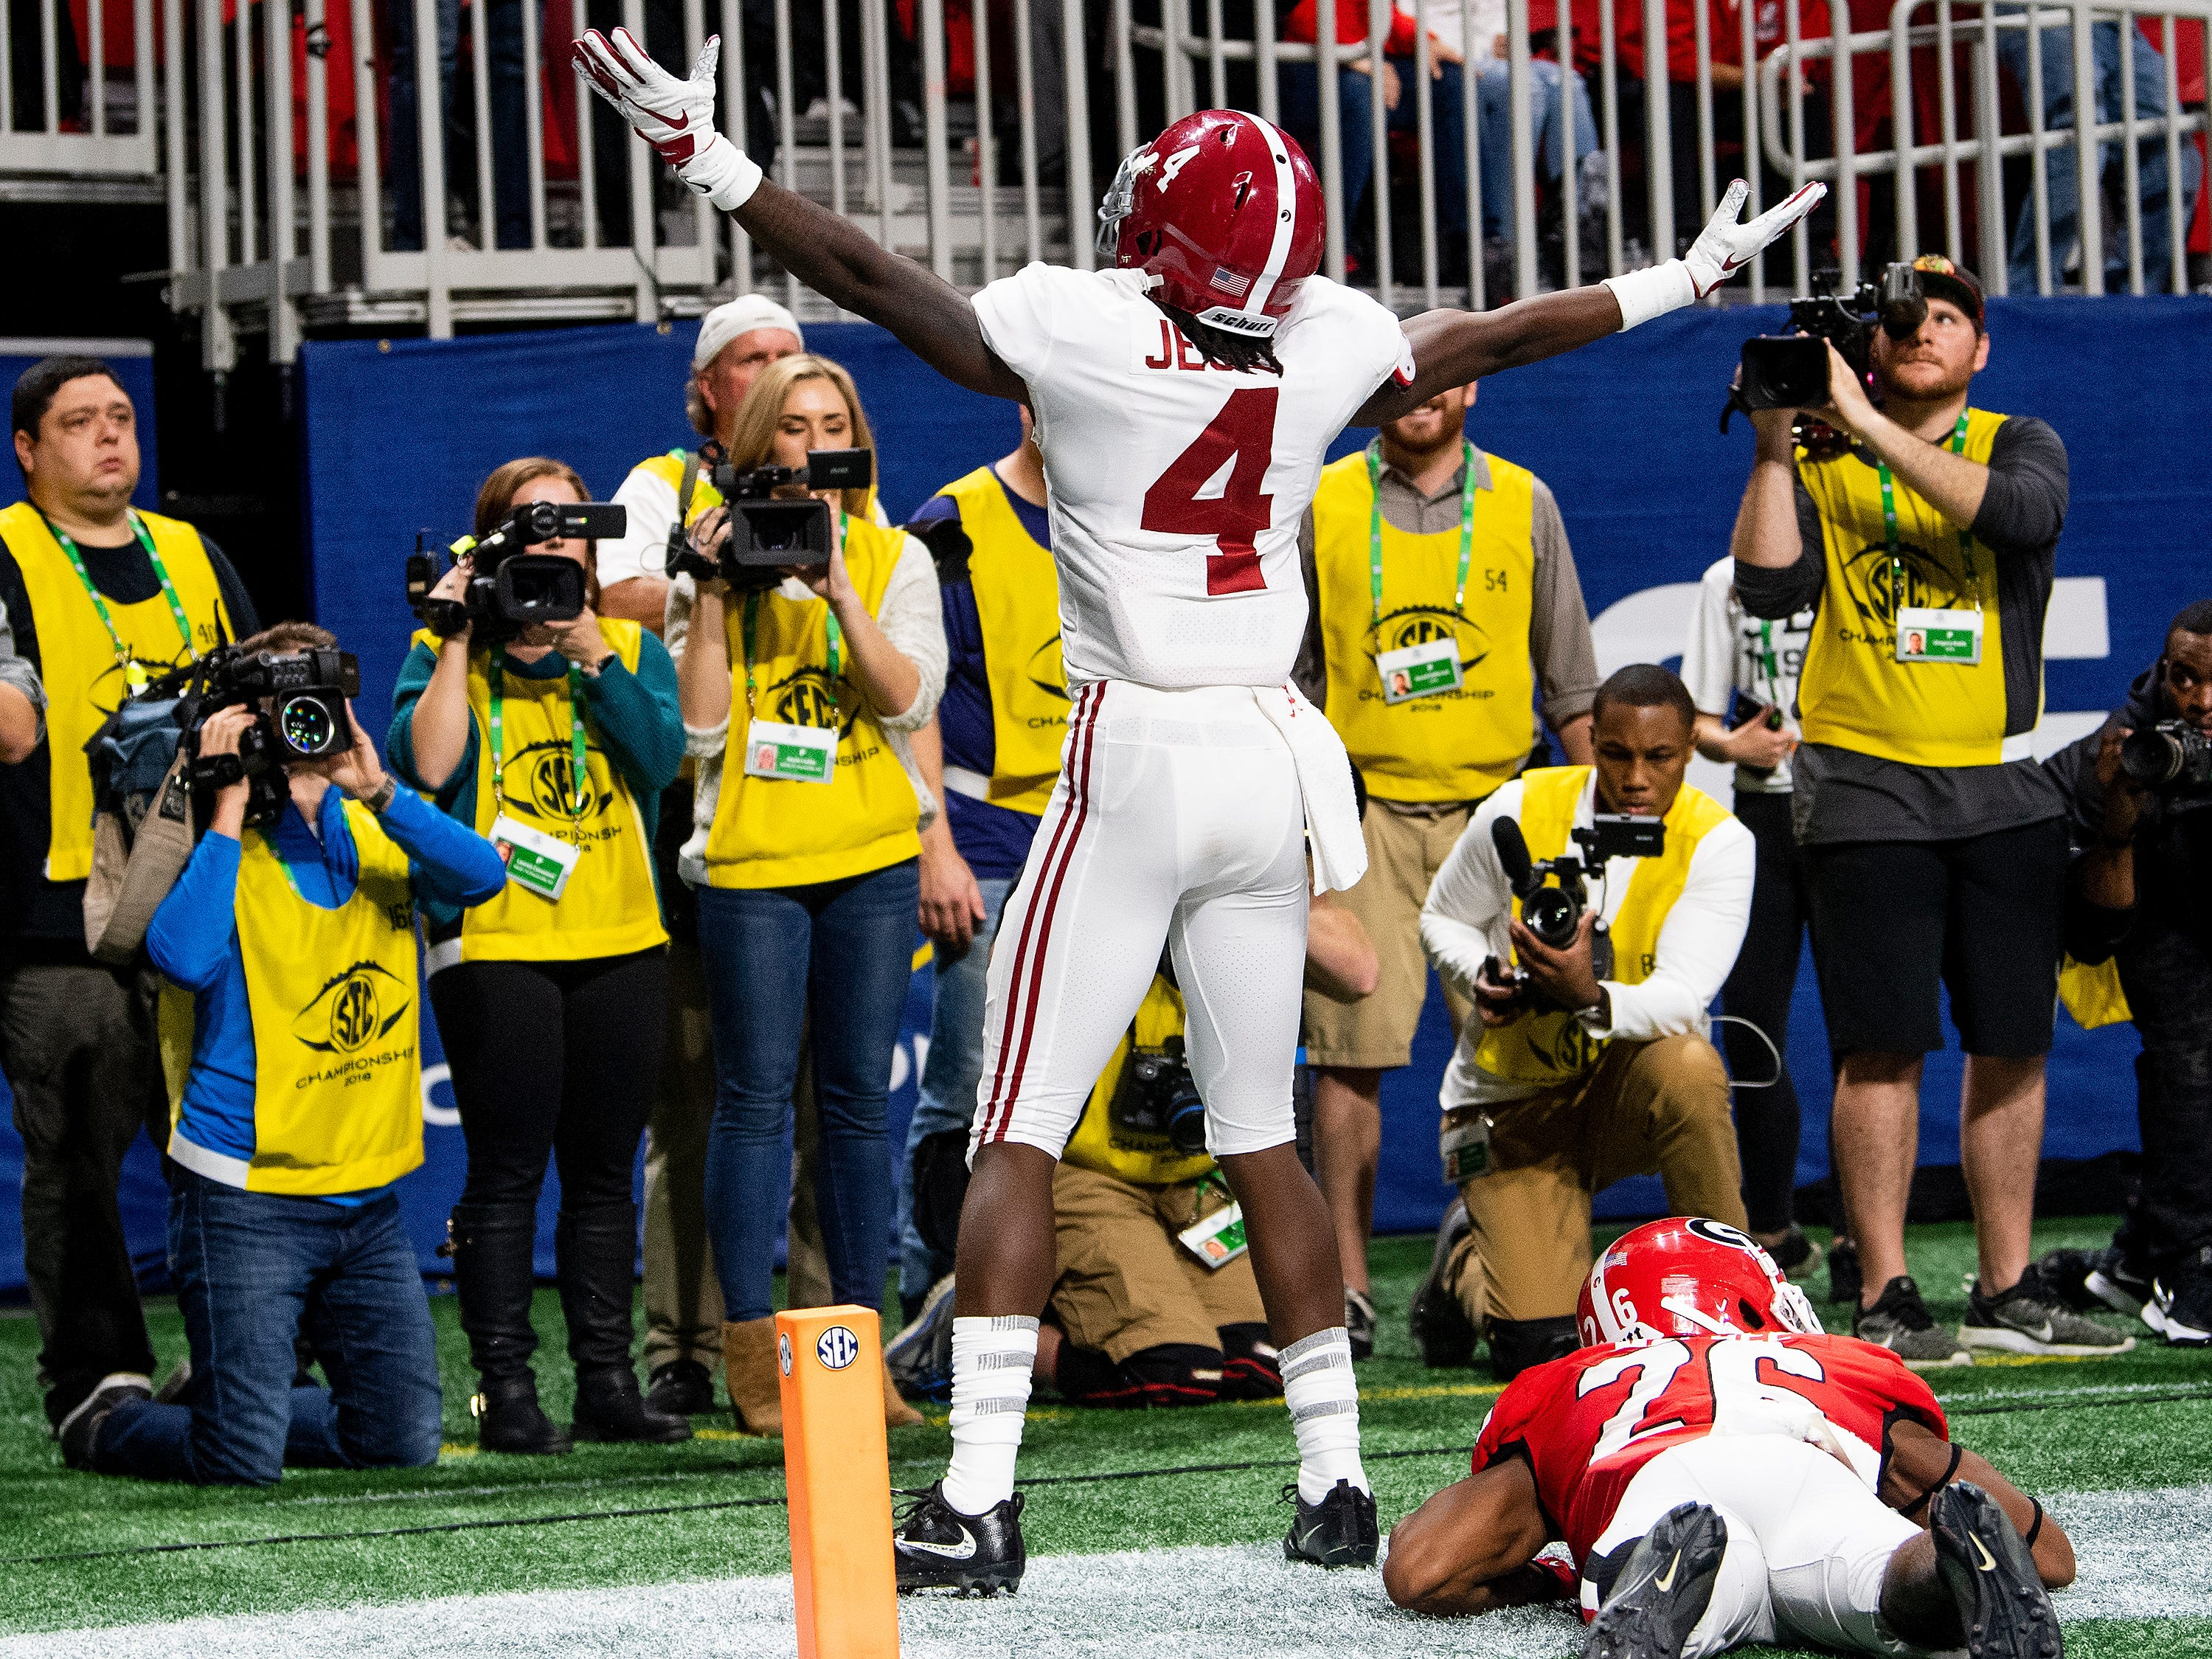 Alabama wide receiver Jerry Jeudy (4) scelebrates after his fourth quarter touchdown catch against Georgia in the SEC Championship Game at Mercedes Benz Stadium in Atlanta, Ga., on Saturday December 1, 2018.